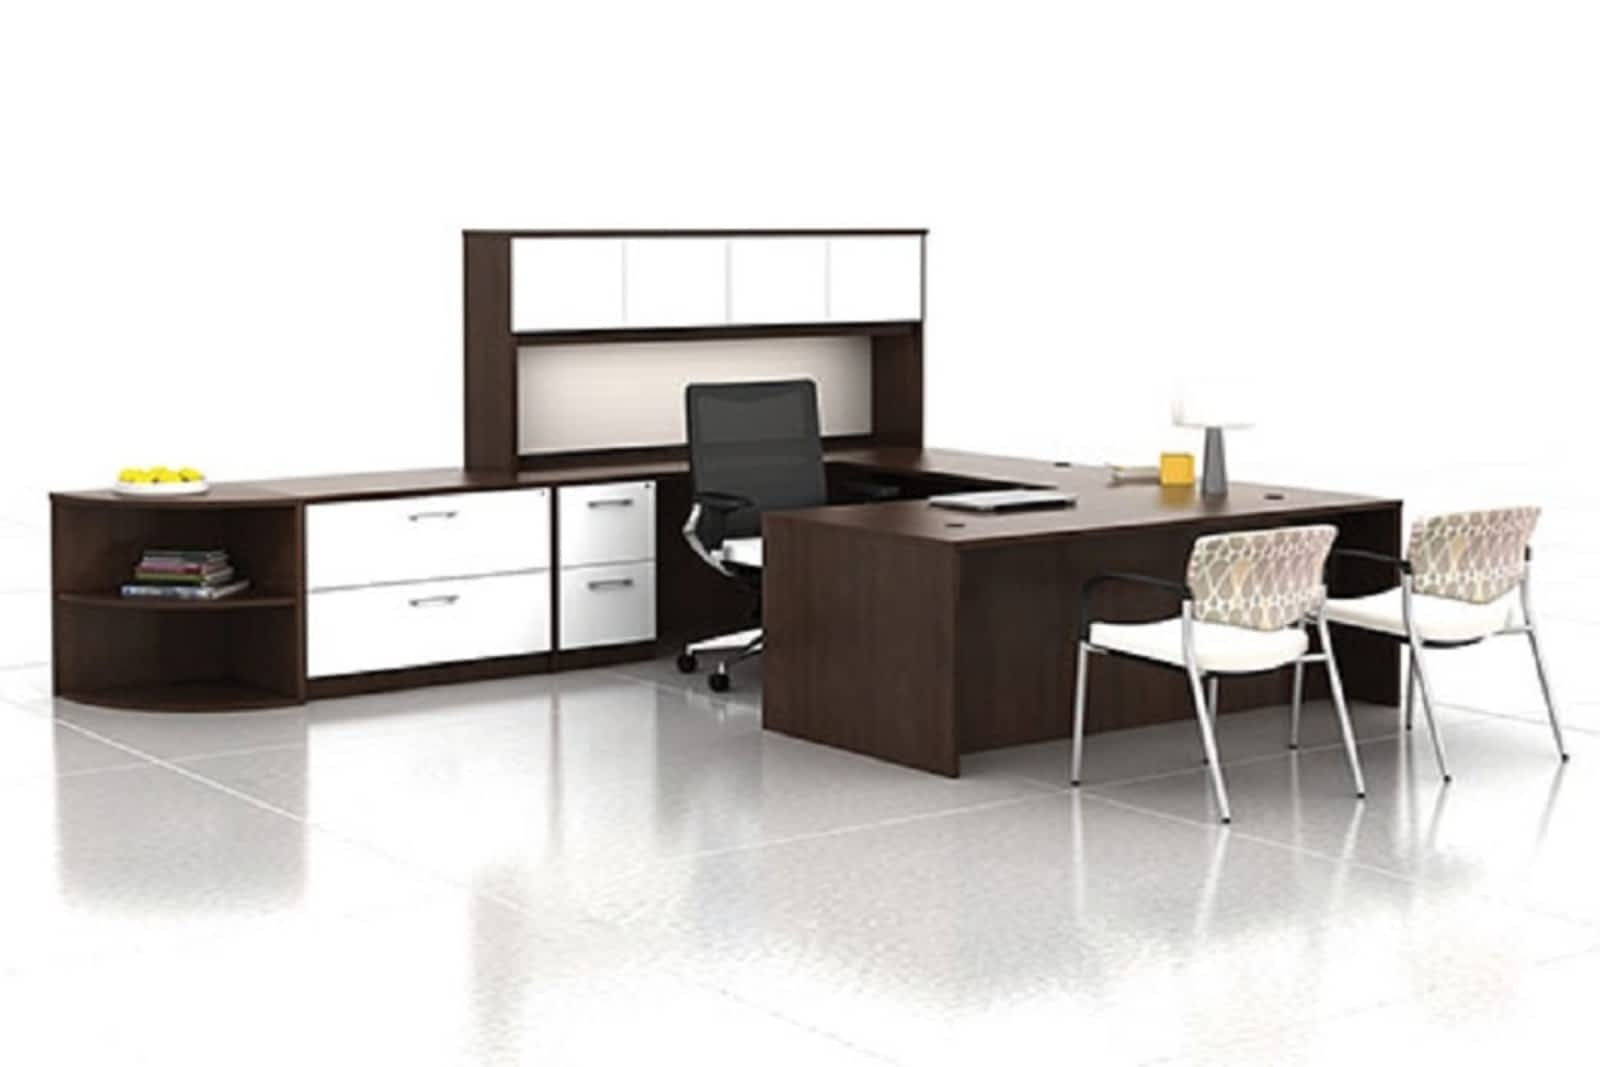 choice office furniture ltd opening hours 3 5905 11 st se